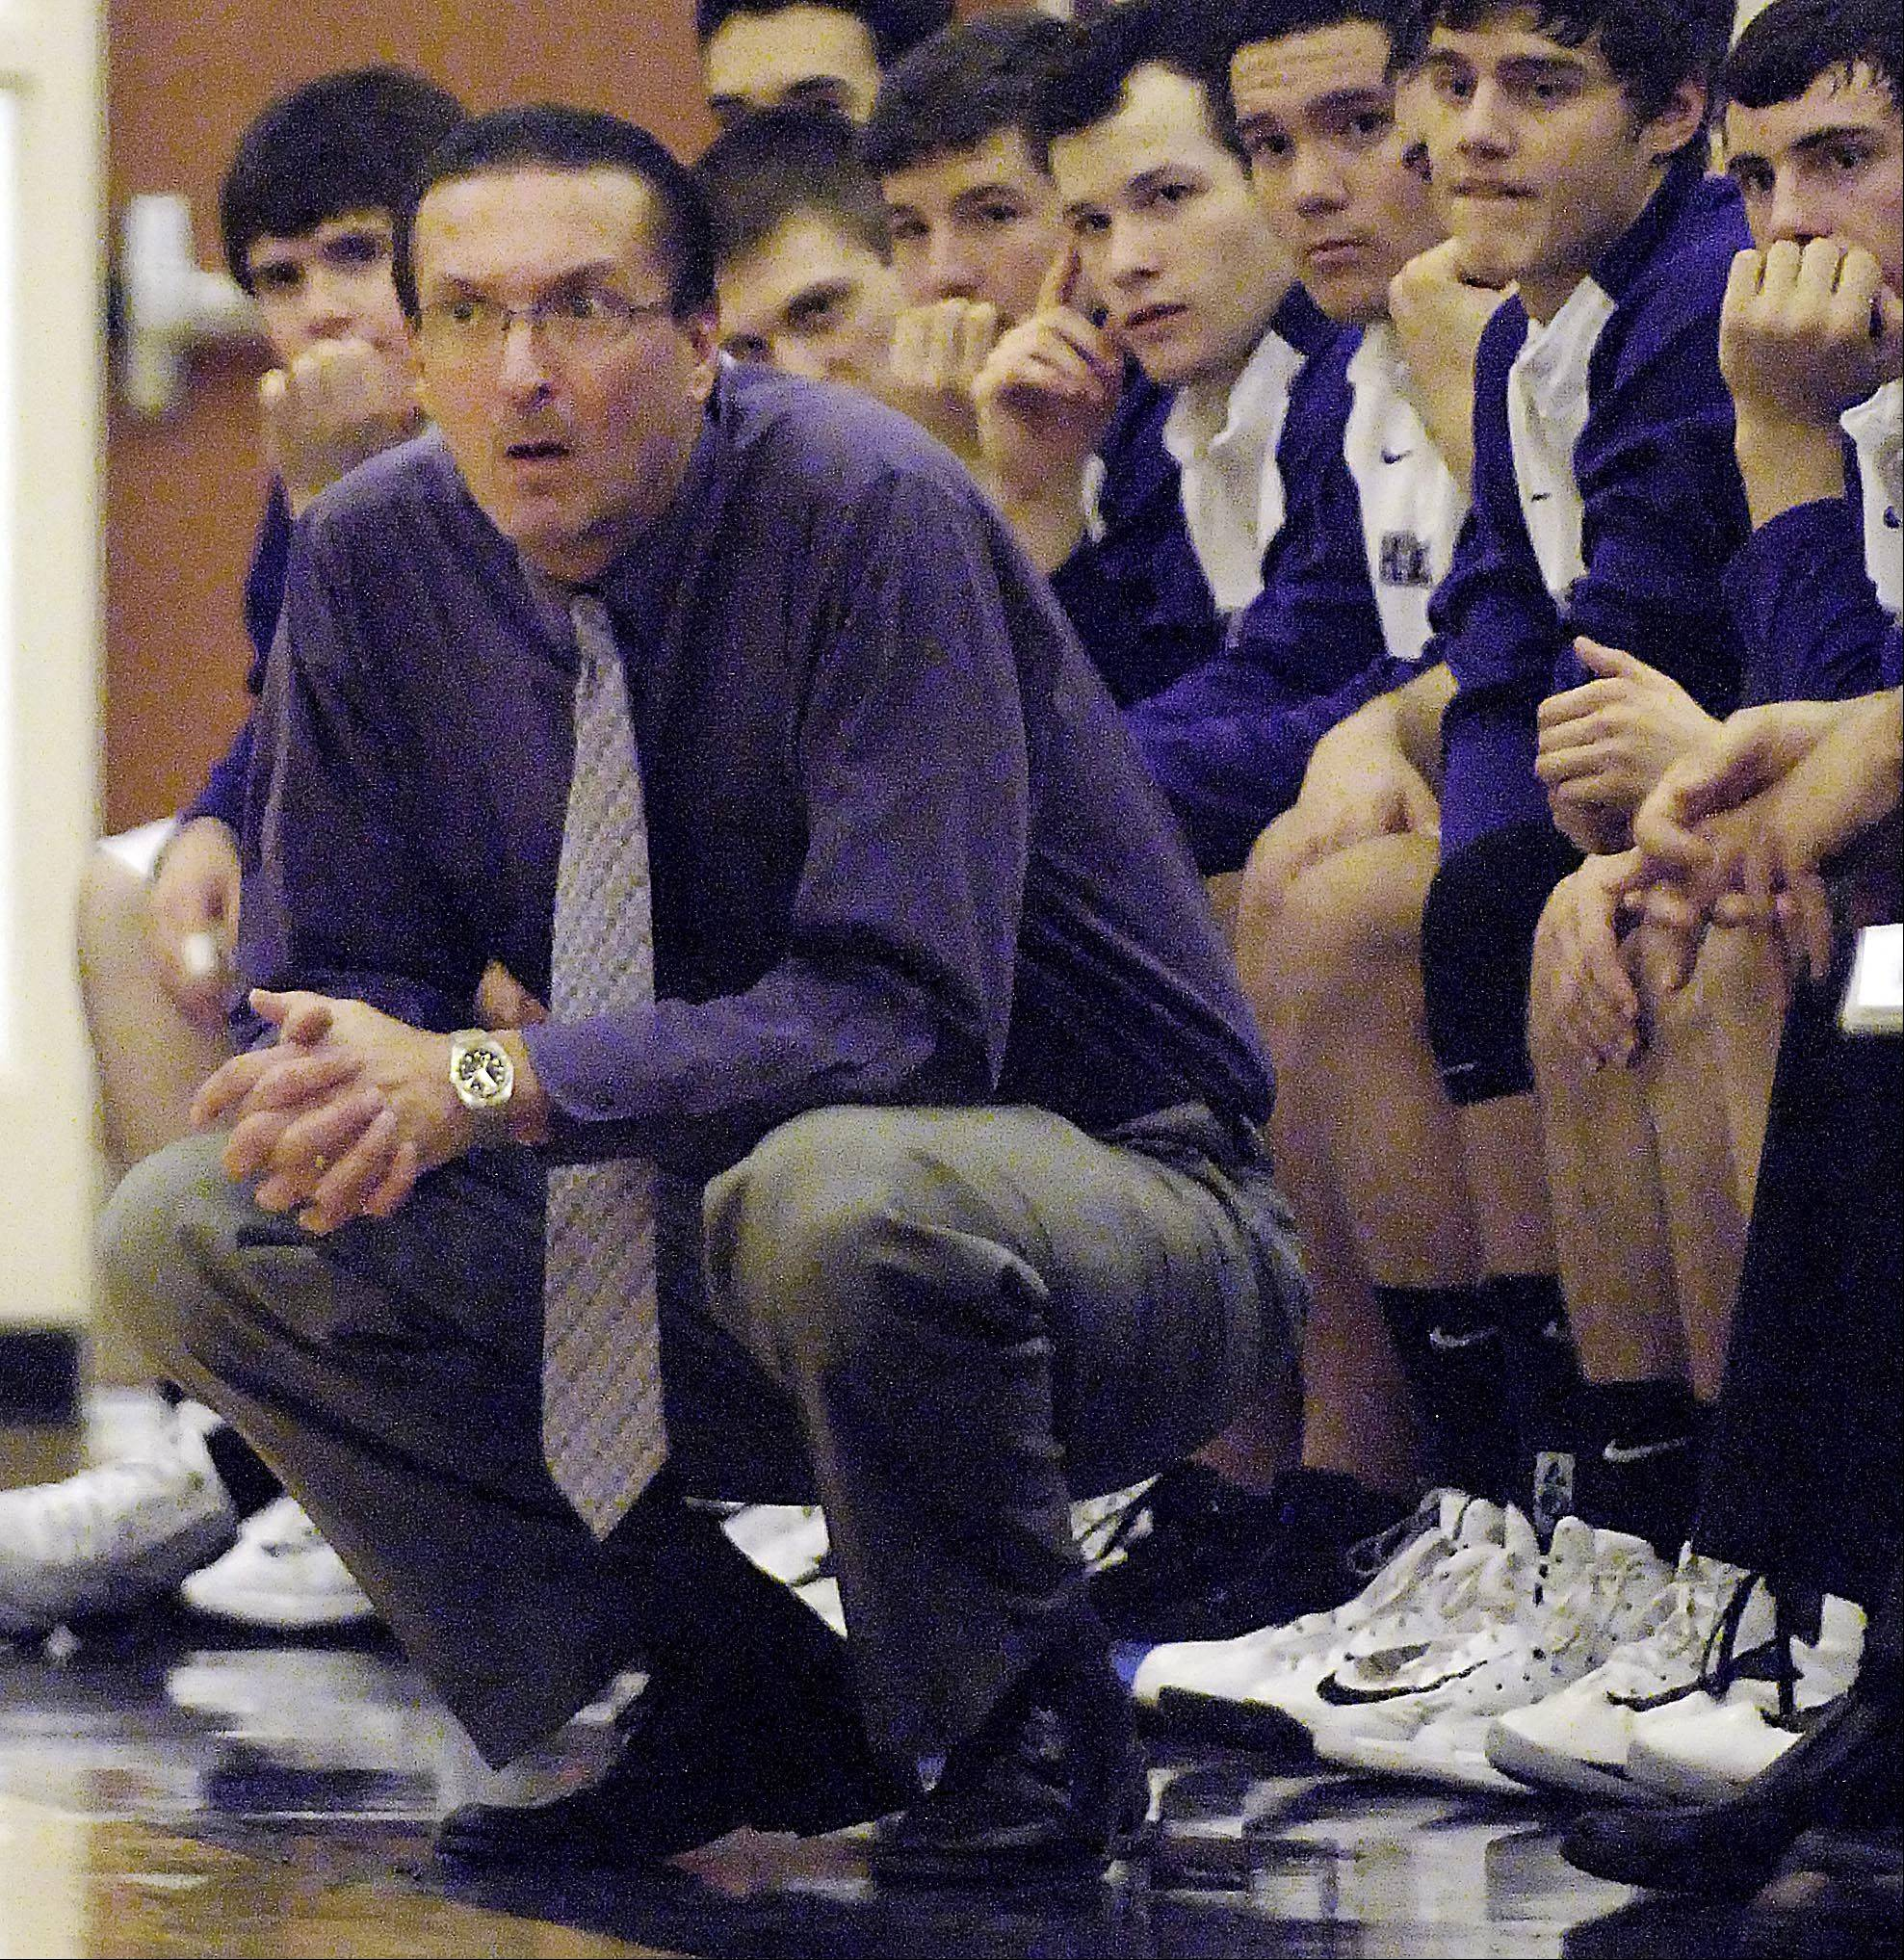 Hampshire coach Bob Barnett directs his team Tuesday in his first game of the season after suffering two heart attacks Nov. 20.